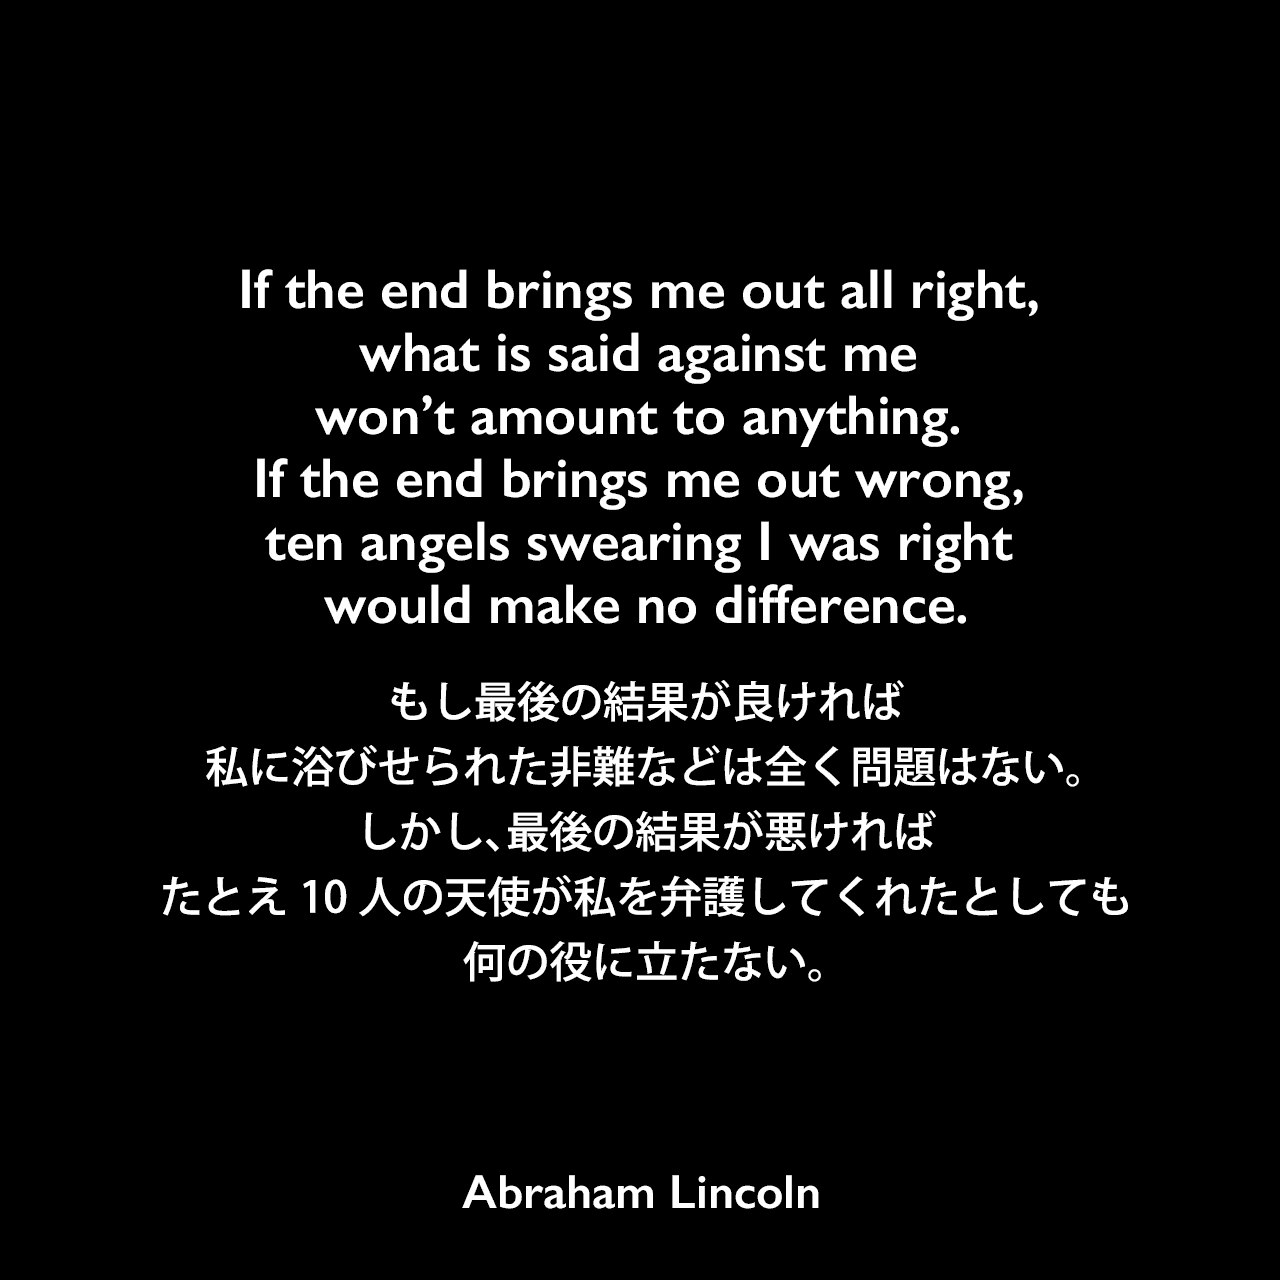 If the end brings me out all right, what is said against me won't amount to anything. If the end brings me out wrong, ten angels swearing I was right would make no difference.もし最後の結果が良ければ、私に浴びせられた非難などは全く問題はない。しかし、最後の結果が悪ければ、たとえ10人の天使が私を弁護してくれたとしても、何の役に立たない。- Henry J. Raymondの本「The Life and Public Service of Abraham Lincoln」よりAbraham Lincoln